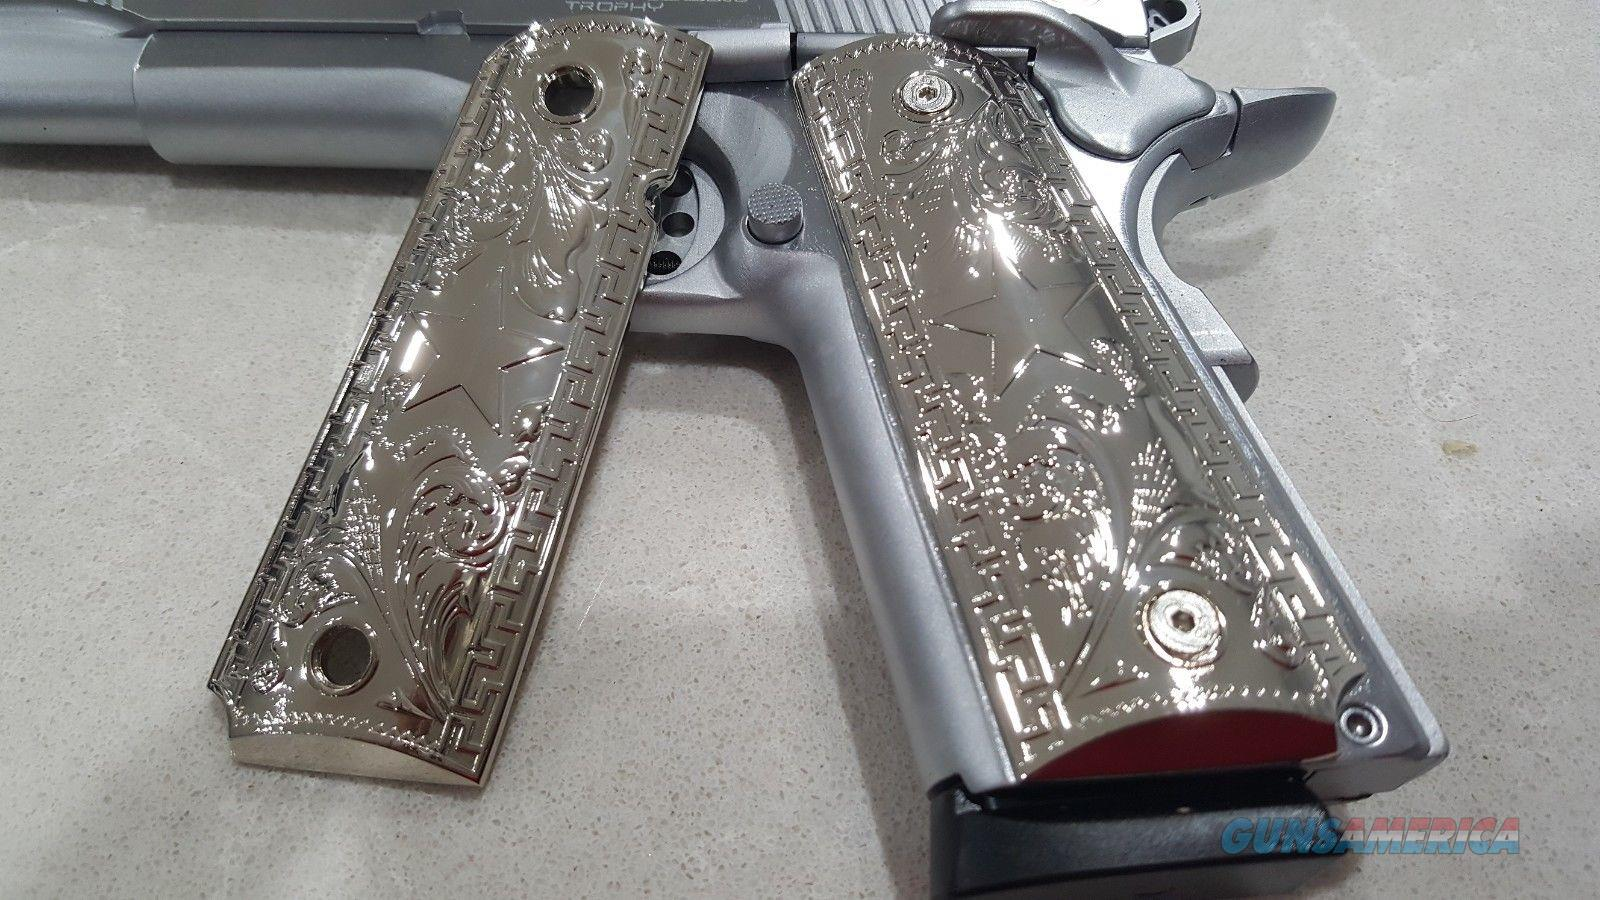 Luxury FIT ALL 1911 Grips COLT GRIPS Full Size Nickel Plated W Matching Screws  Non-Guns > Gun Parts > 1911